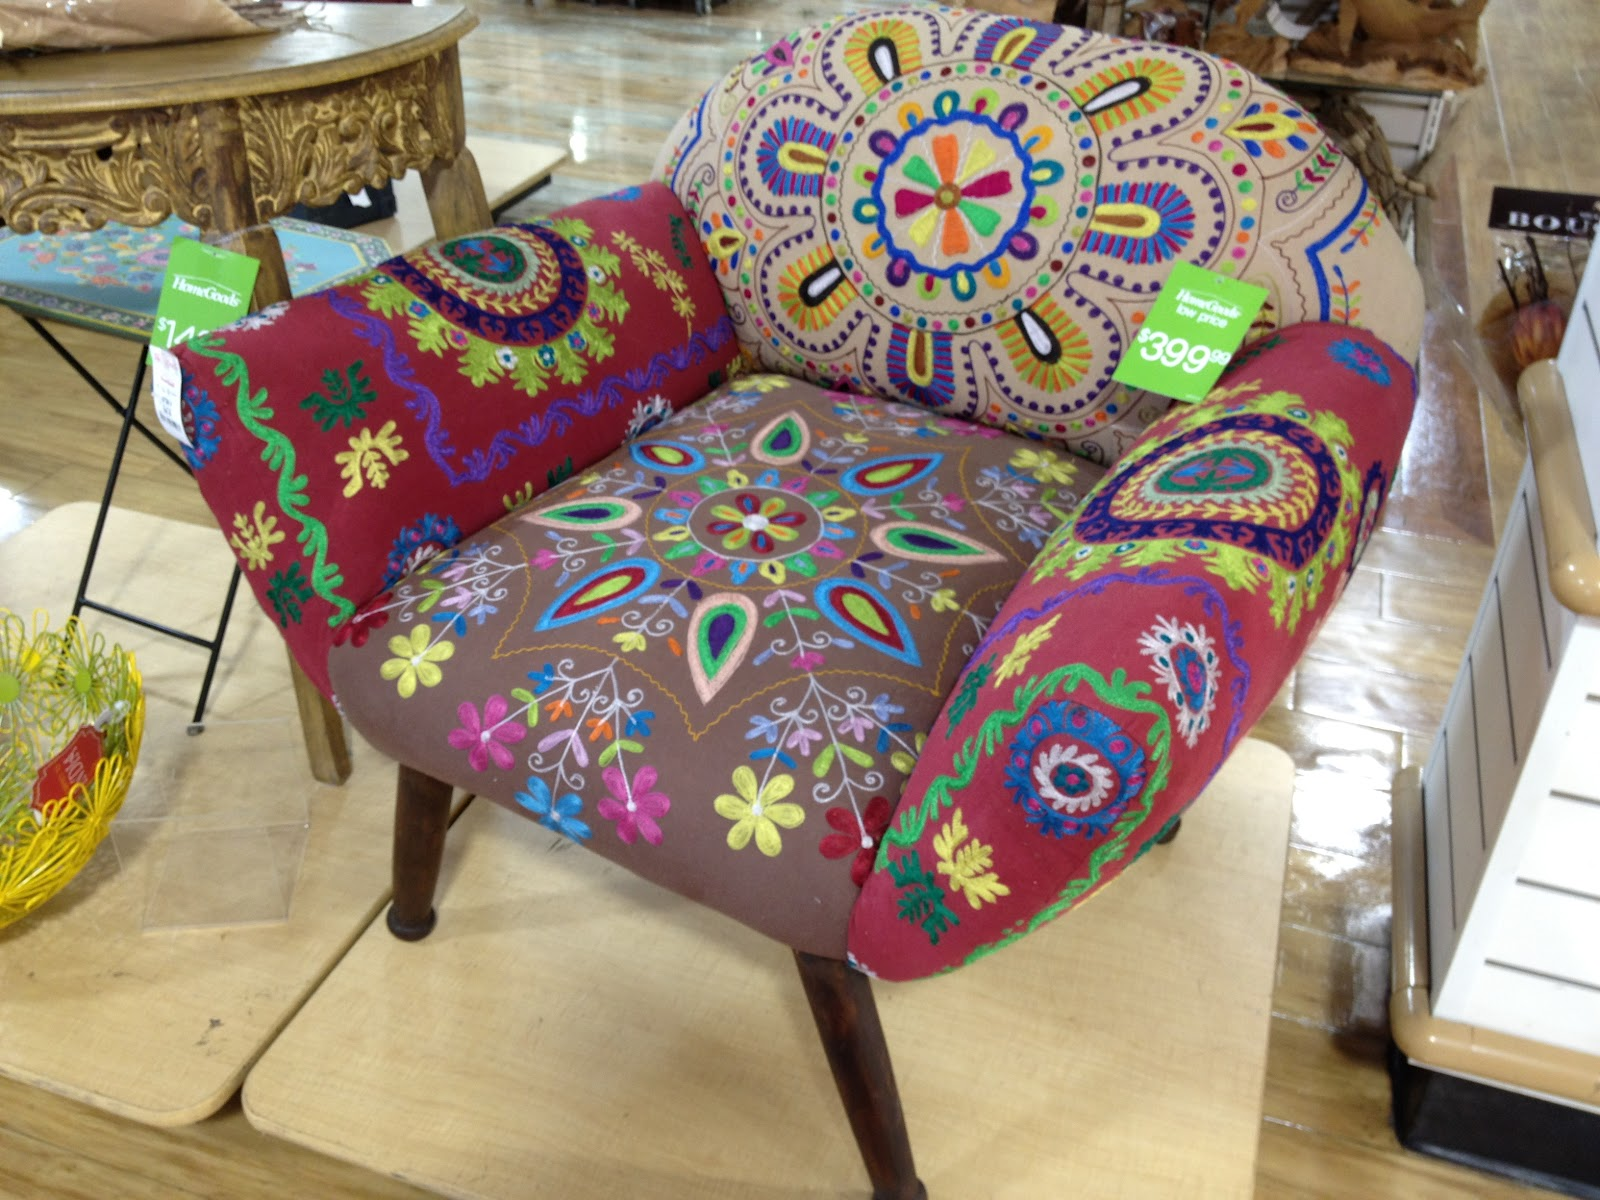 The Indian Bazaar is at TJMaxx Homegoods! on home goods furniture lamps, homegoods accent chairs, home goods wicker furniture, by cynthia rowley chairs, home goods furniture online, rooms to go dining table and chairs, home goods furniture decorative pillows, home goods patio furniture, home goods furniture bombe chests, home goods furniture loveseats, home goods furniture tv, marshalls accent chairs, home goods furniture catalogue, home goods furniture chest of drawers, home goods outdoor furniture, cynthia rowley peach velvet chairs, home goods stores, home goods furniture armoires, home goods furniture bookcases, home goods furniture warehouse,